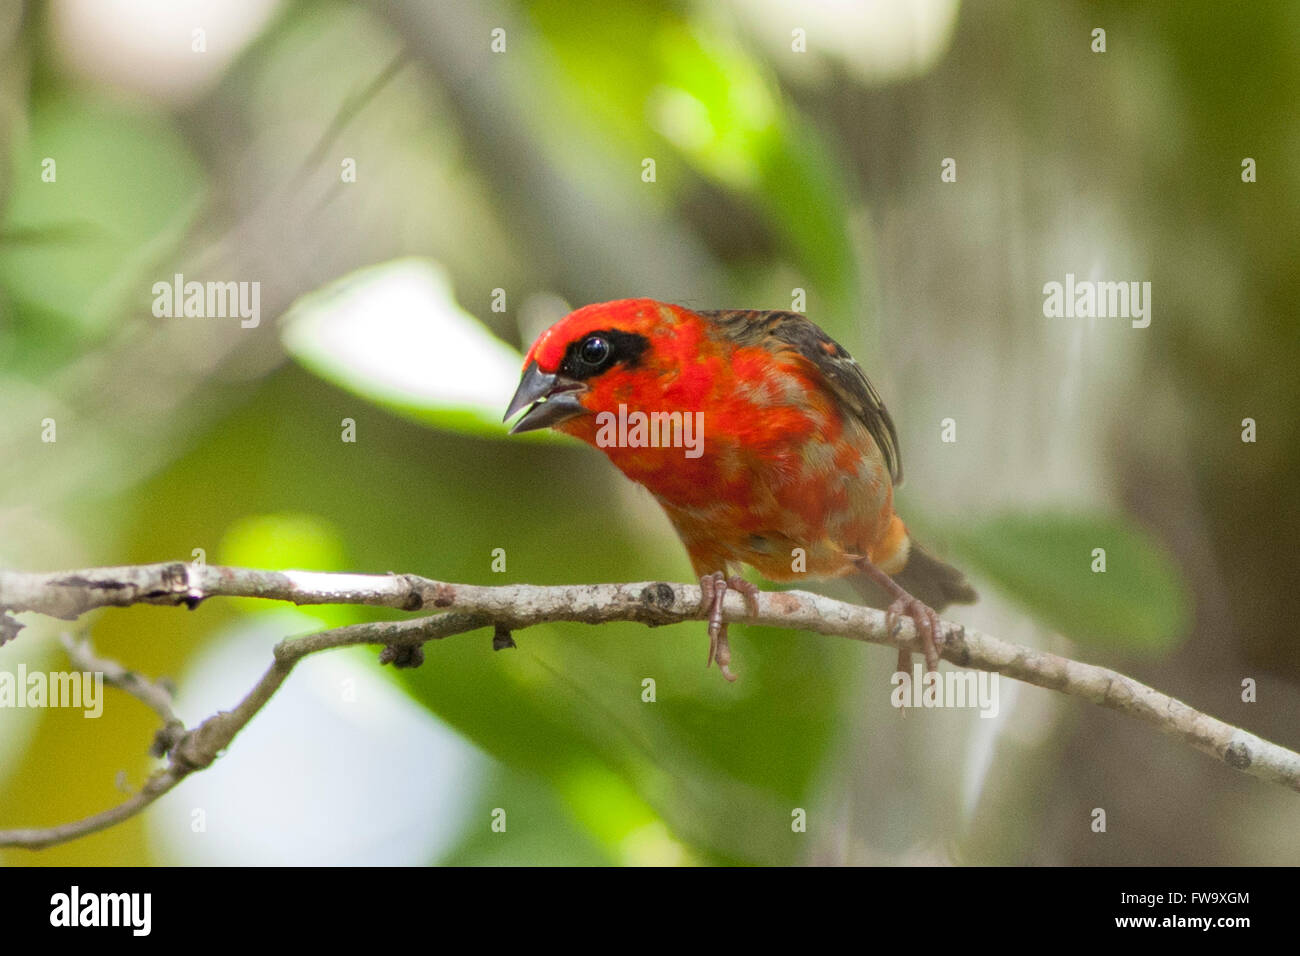 Madagascar Red Fody on the islet of Ile Aux Aigrettes in Mauritius. - Stock Image